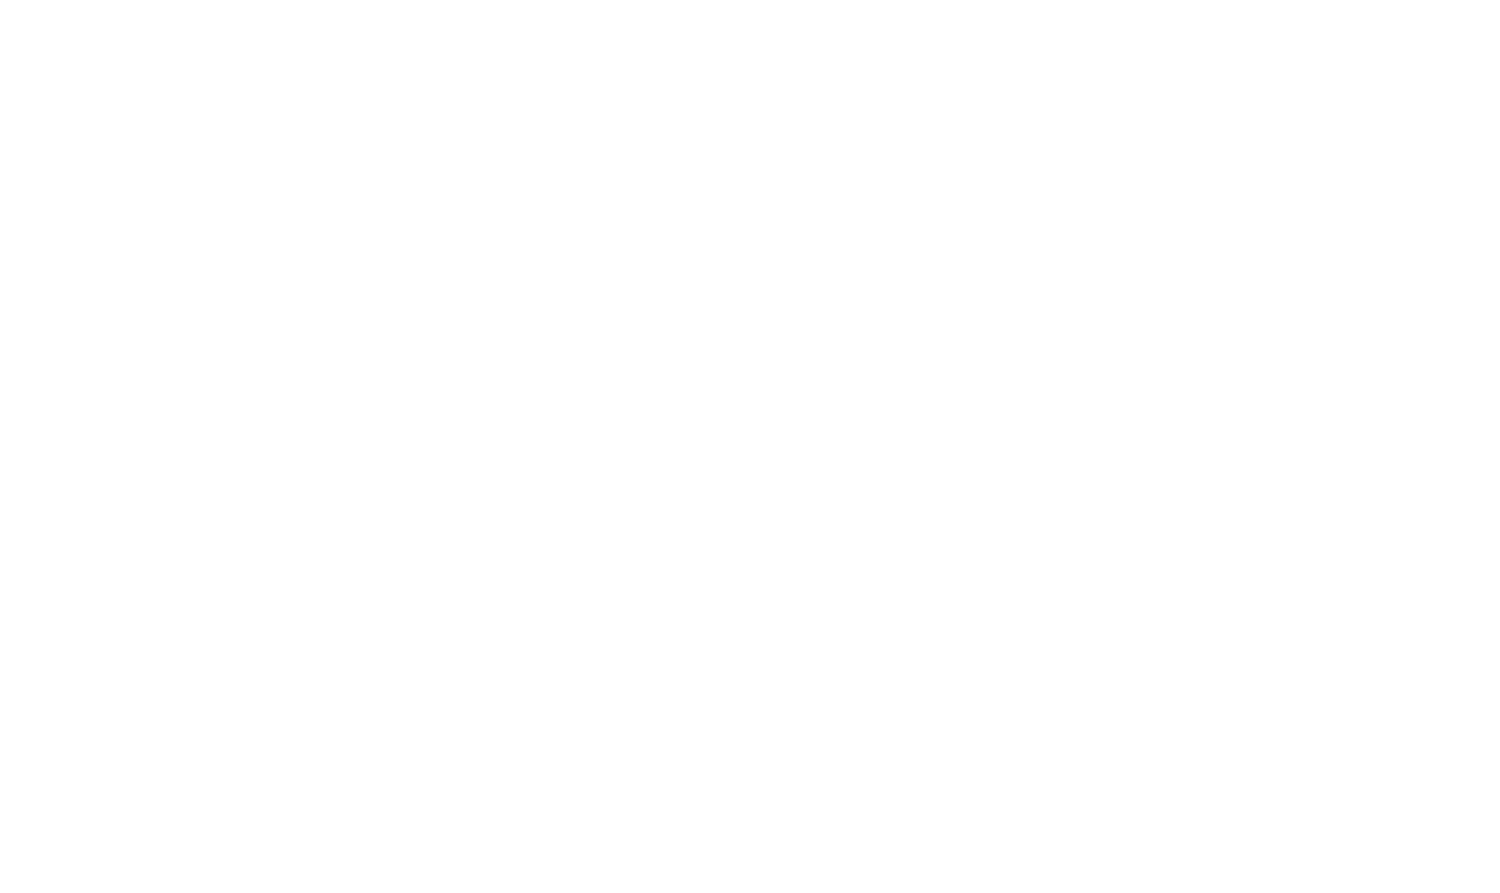 Cloudview Realty and Managment LLC